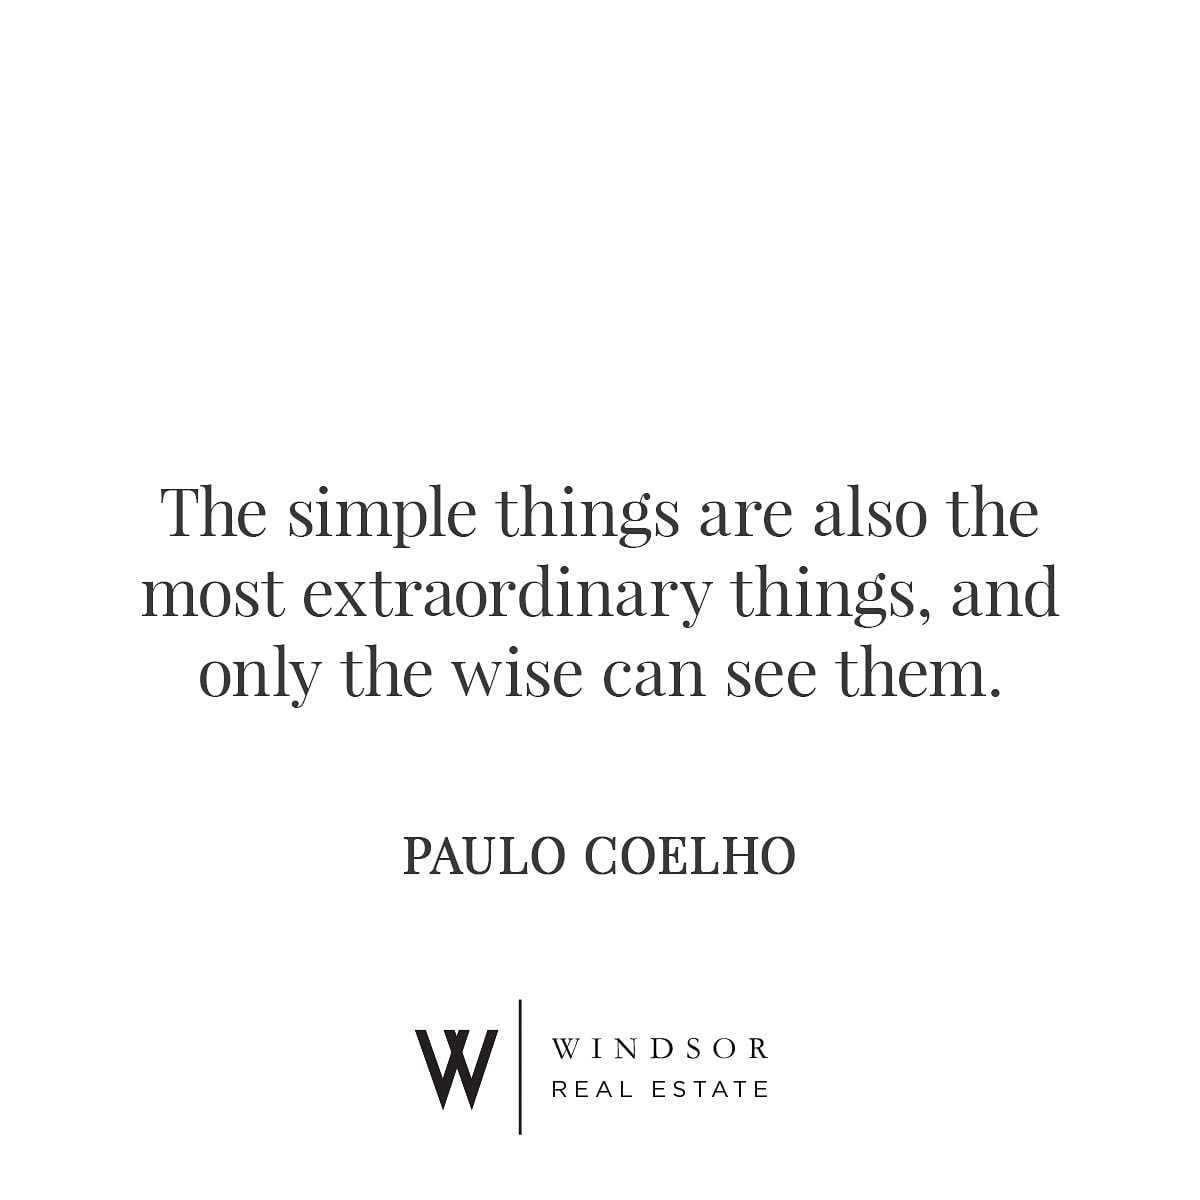 This week focus on the simple things that makes for extra-ordinary results!   #mondaymotivation #WindsorRealEstate #thealchemist